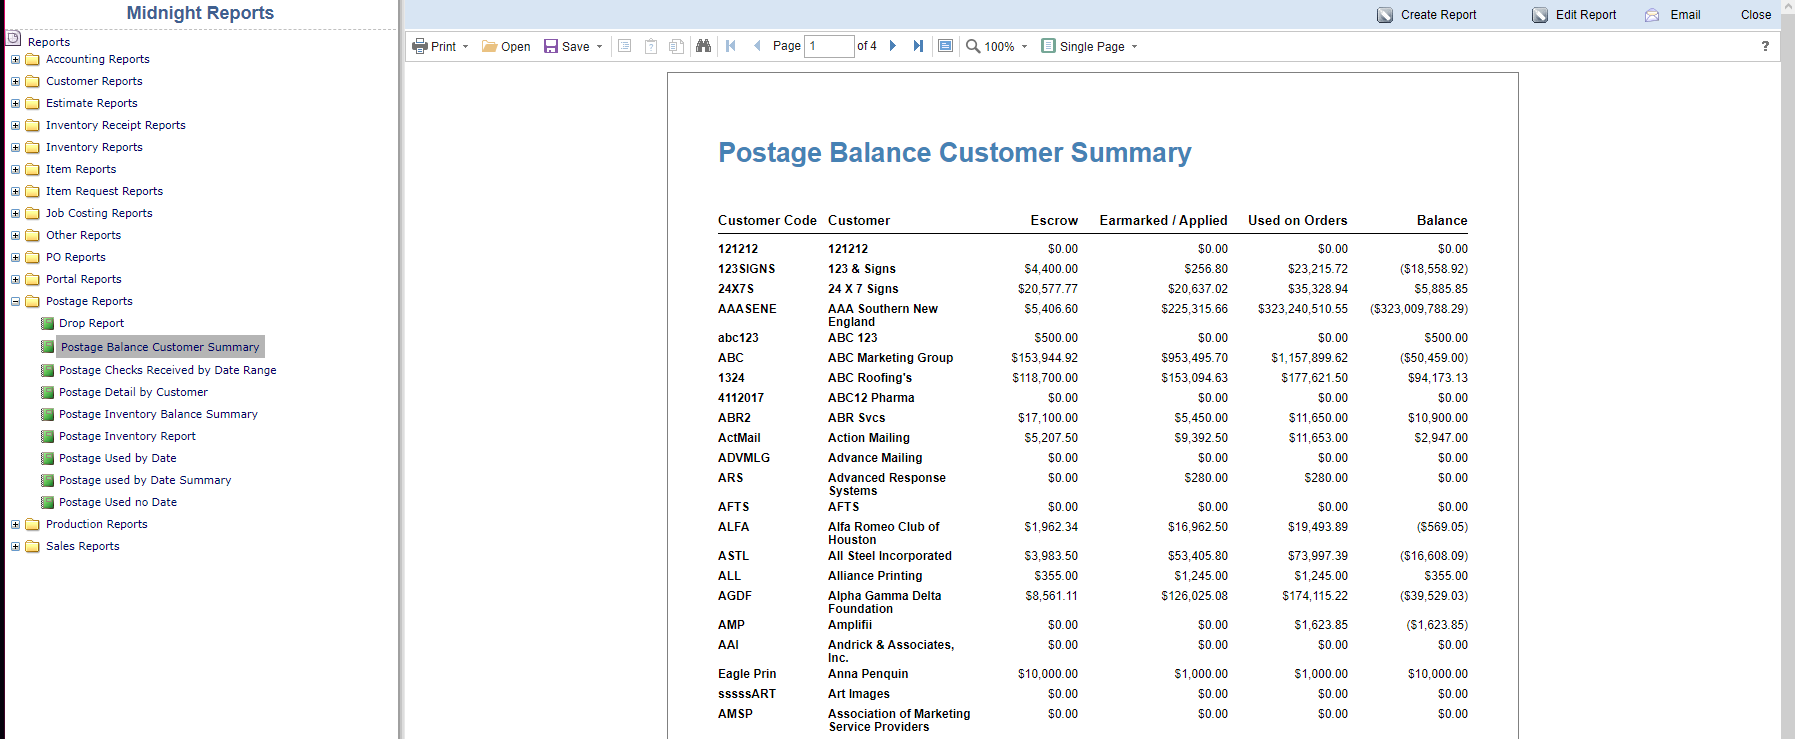 A19_postage_balance_customer_summary_report.png